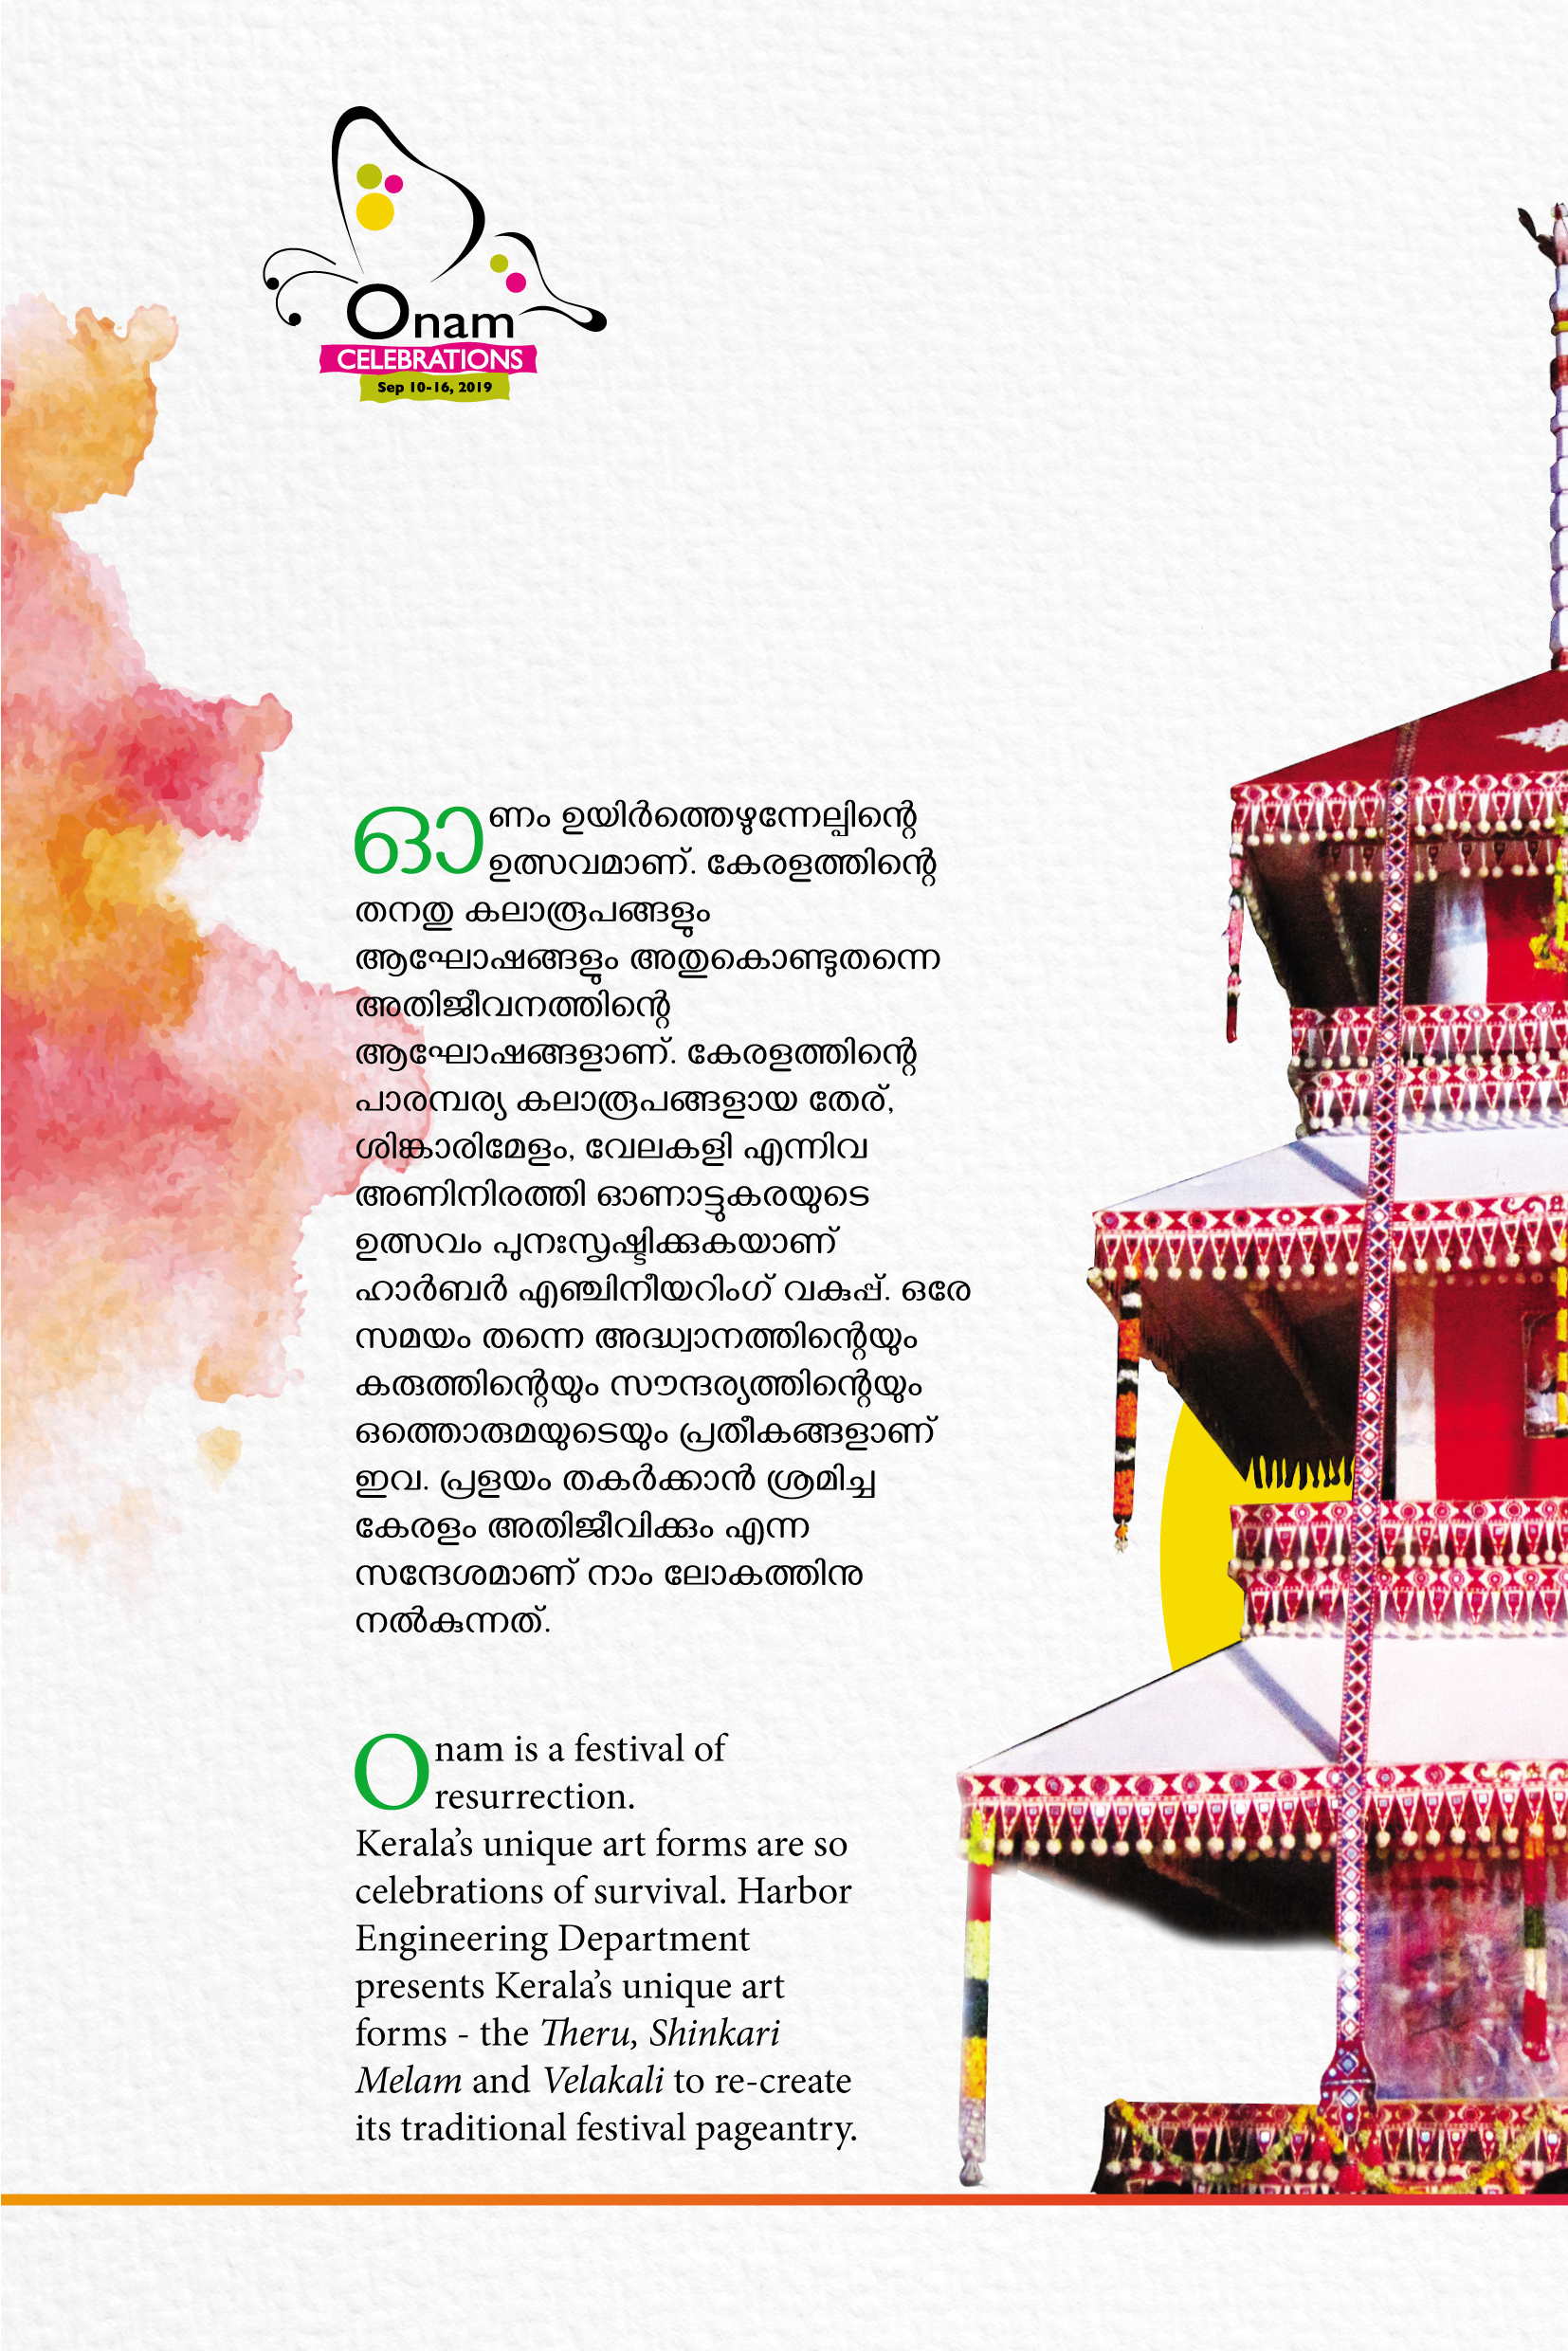 Onam Pageantry Brochure page 2 - Harbour Engineering Department